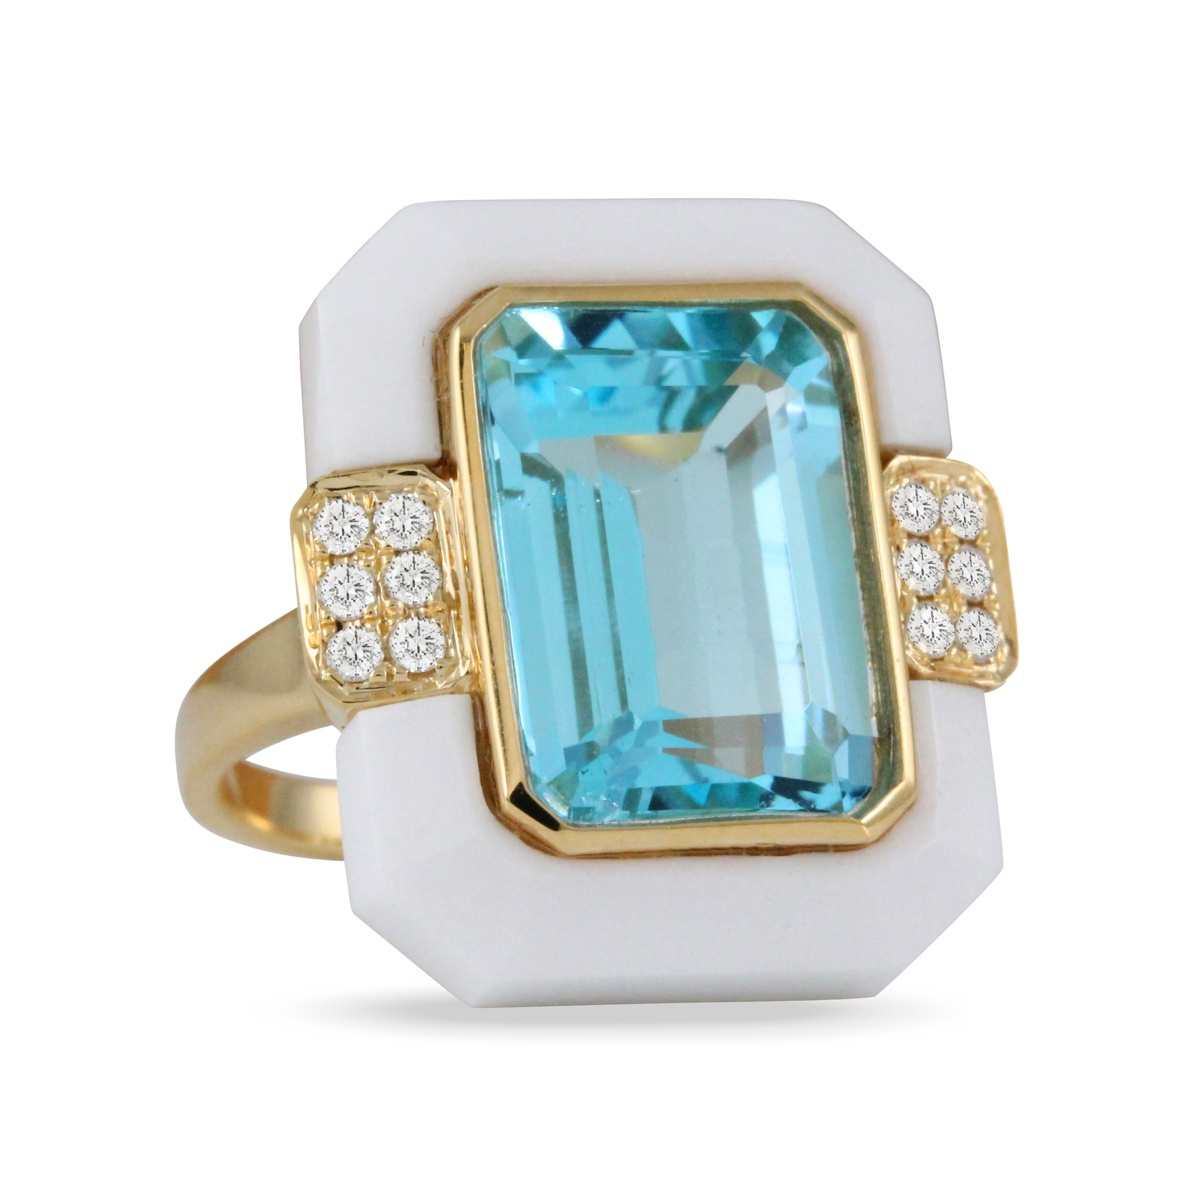 Doves 18KT Yellow Gold Blue Topaz Ring Set in White Agate